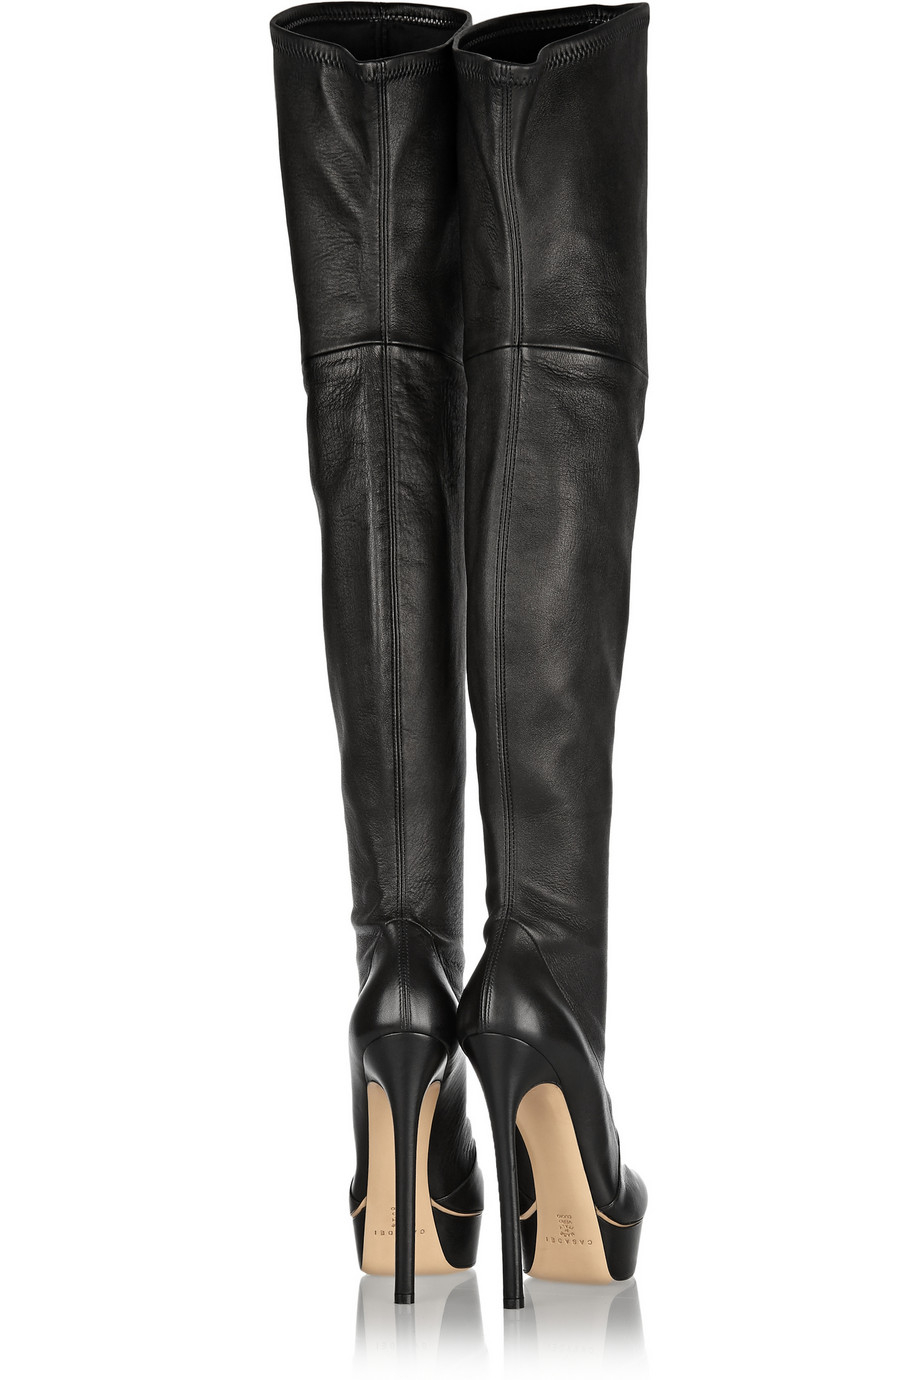 Casadei Stretch-Leather Over-The-Knee Boots in Black | Lyst